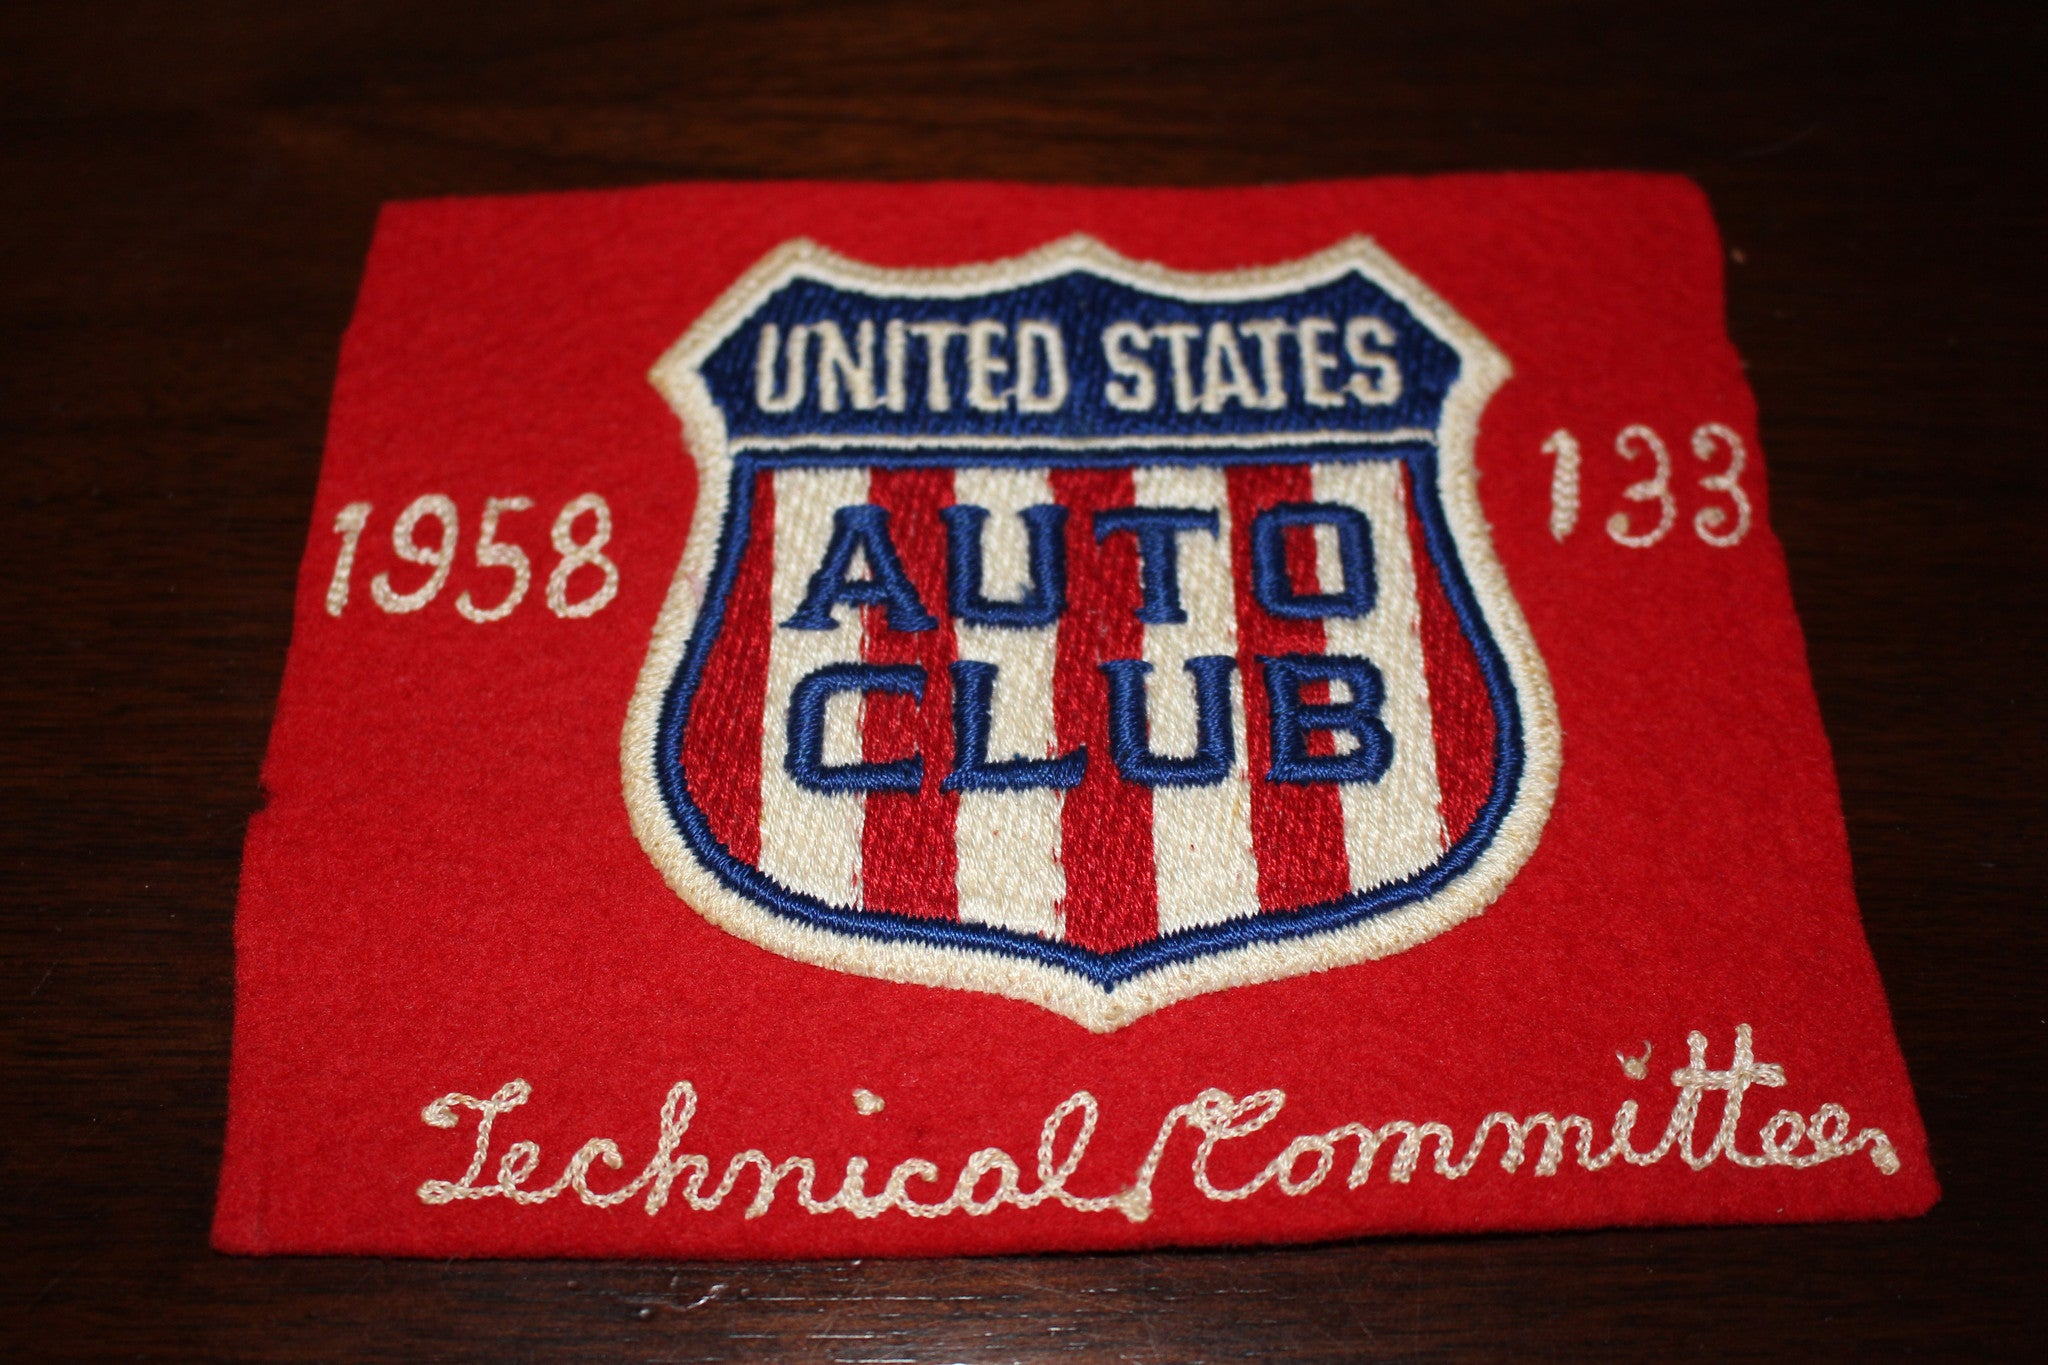 1958 Indianapolis 500 Technical Committee Arm Band - Vintage Indy Sports